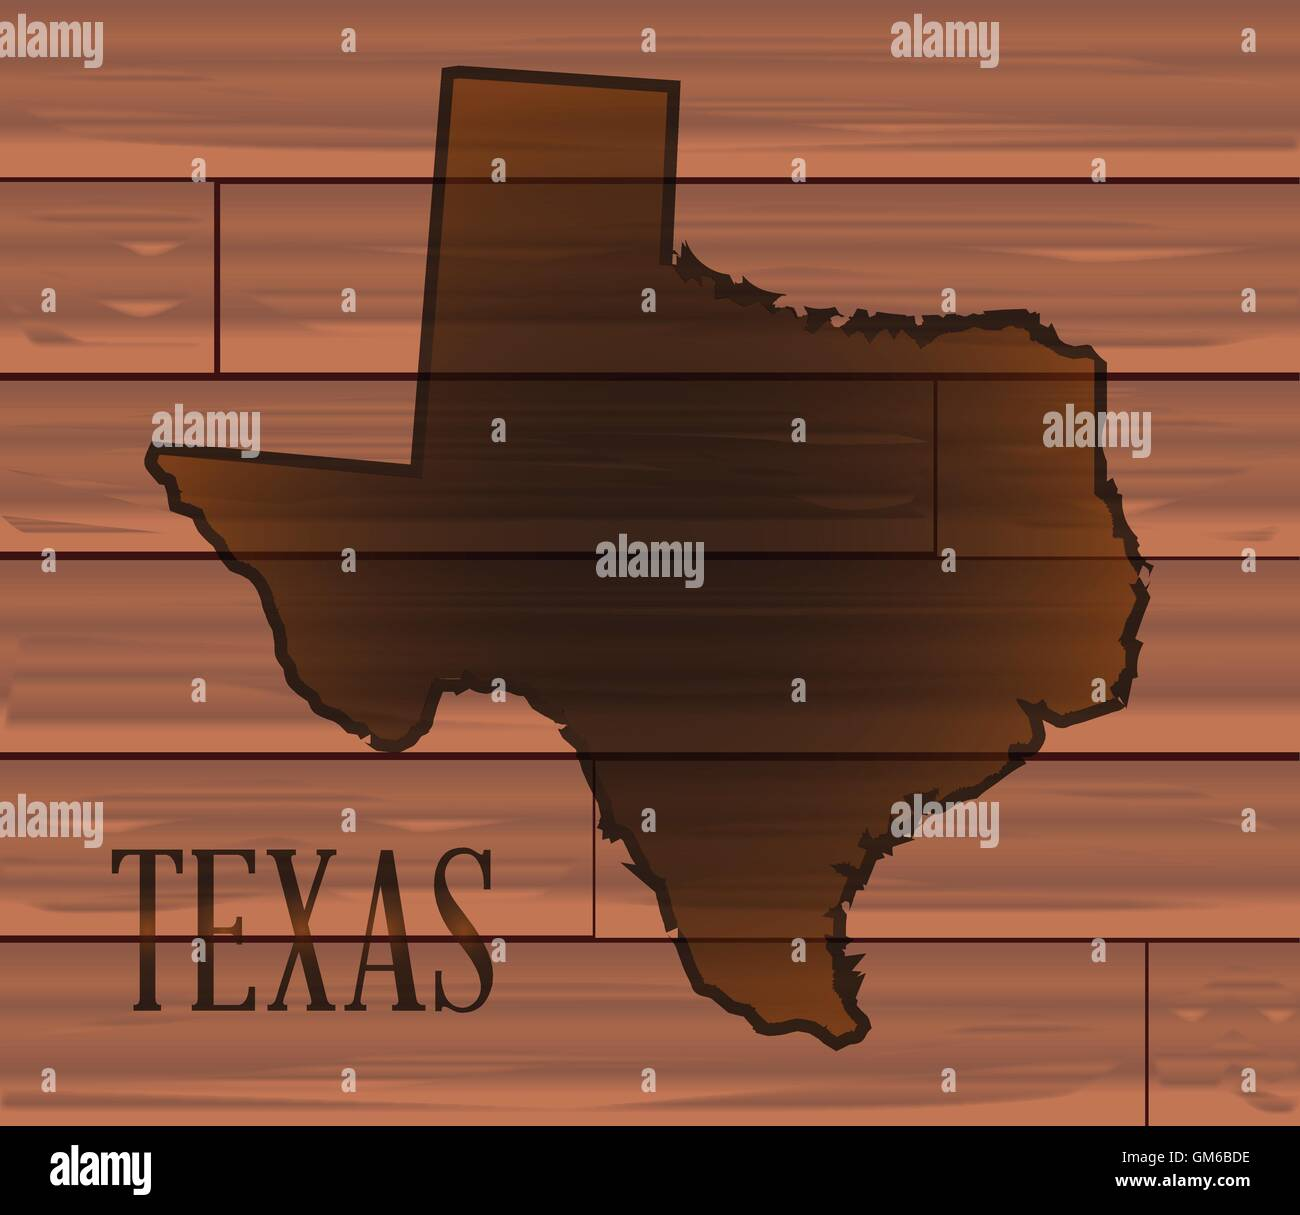 Texas Branded On Wood - Stock Image